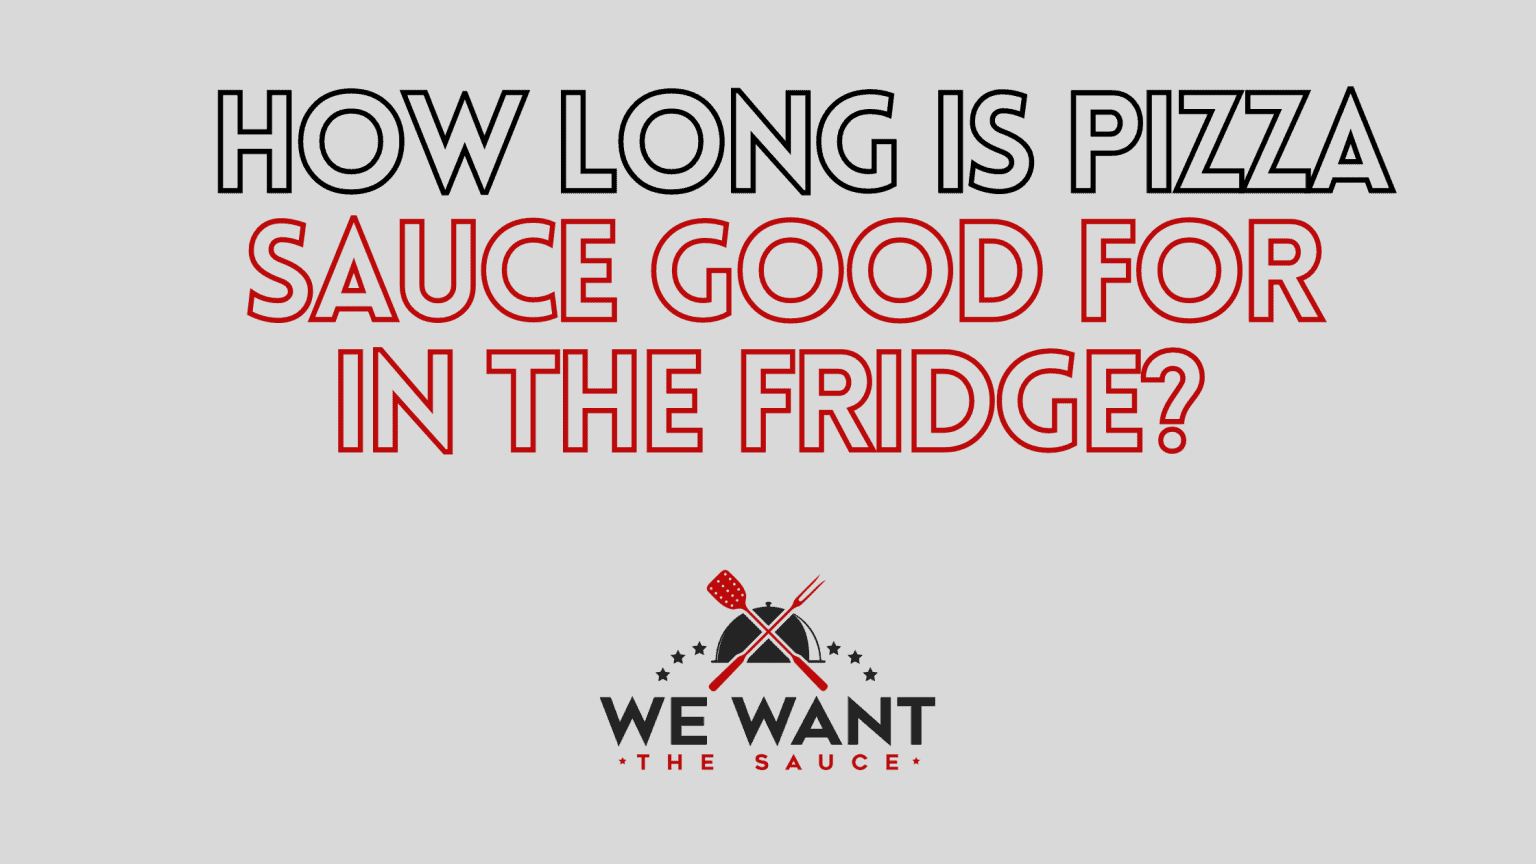 How Long Is Pizza Sauce Good For In The Fridge?